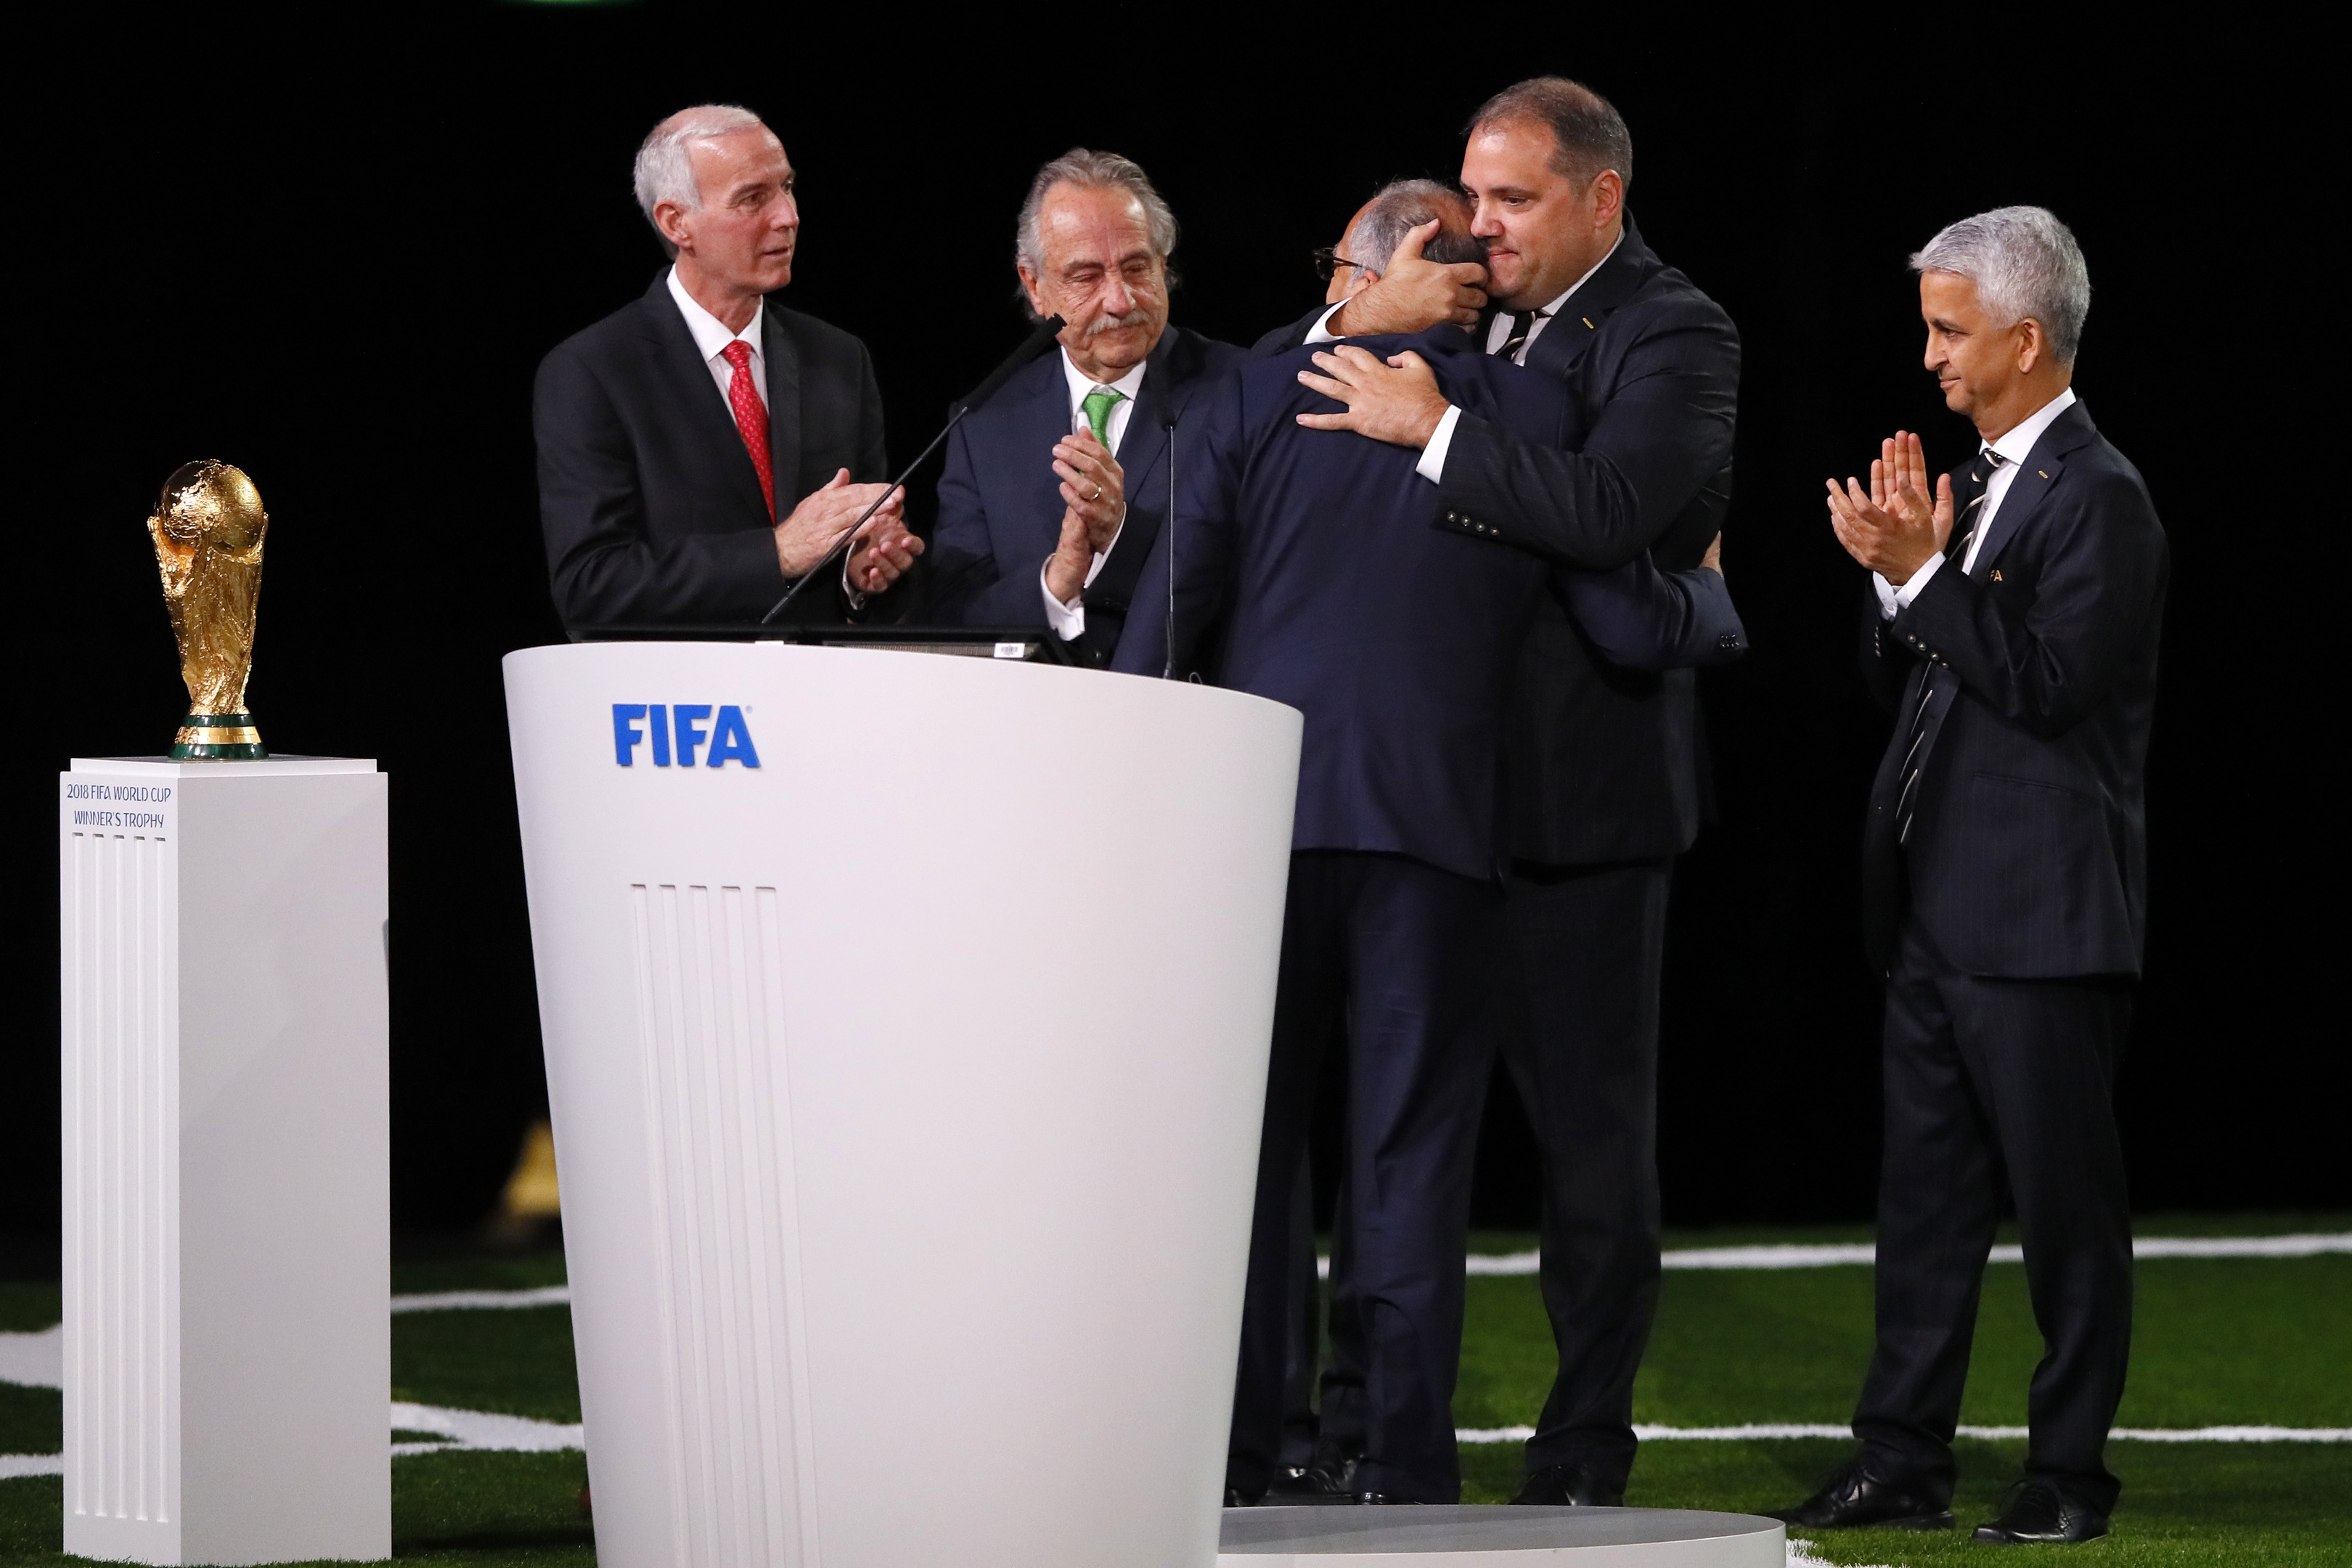 Delegates from the United States, Mexico and Canada celebrate being awarded the World Cup Finals (Kevin C. Cox/Getty Images)